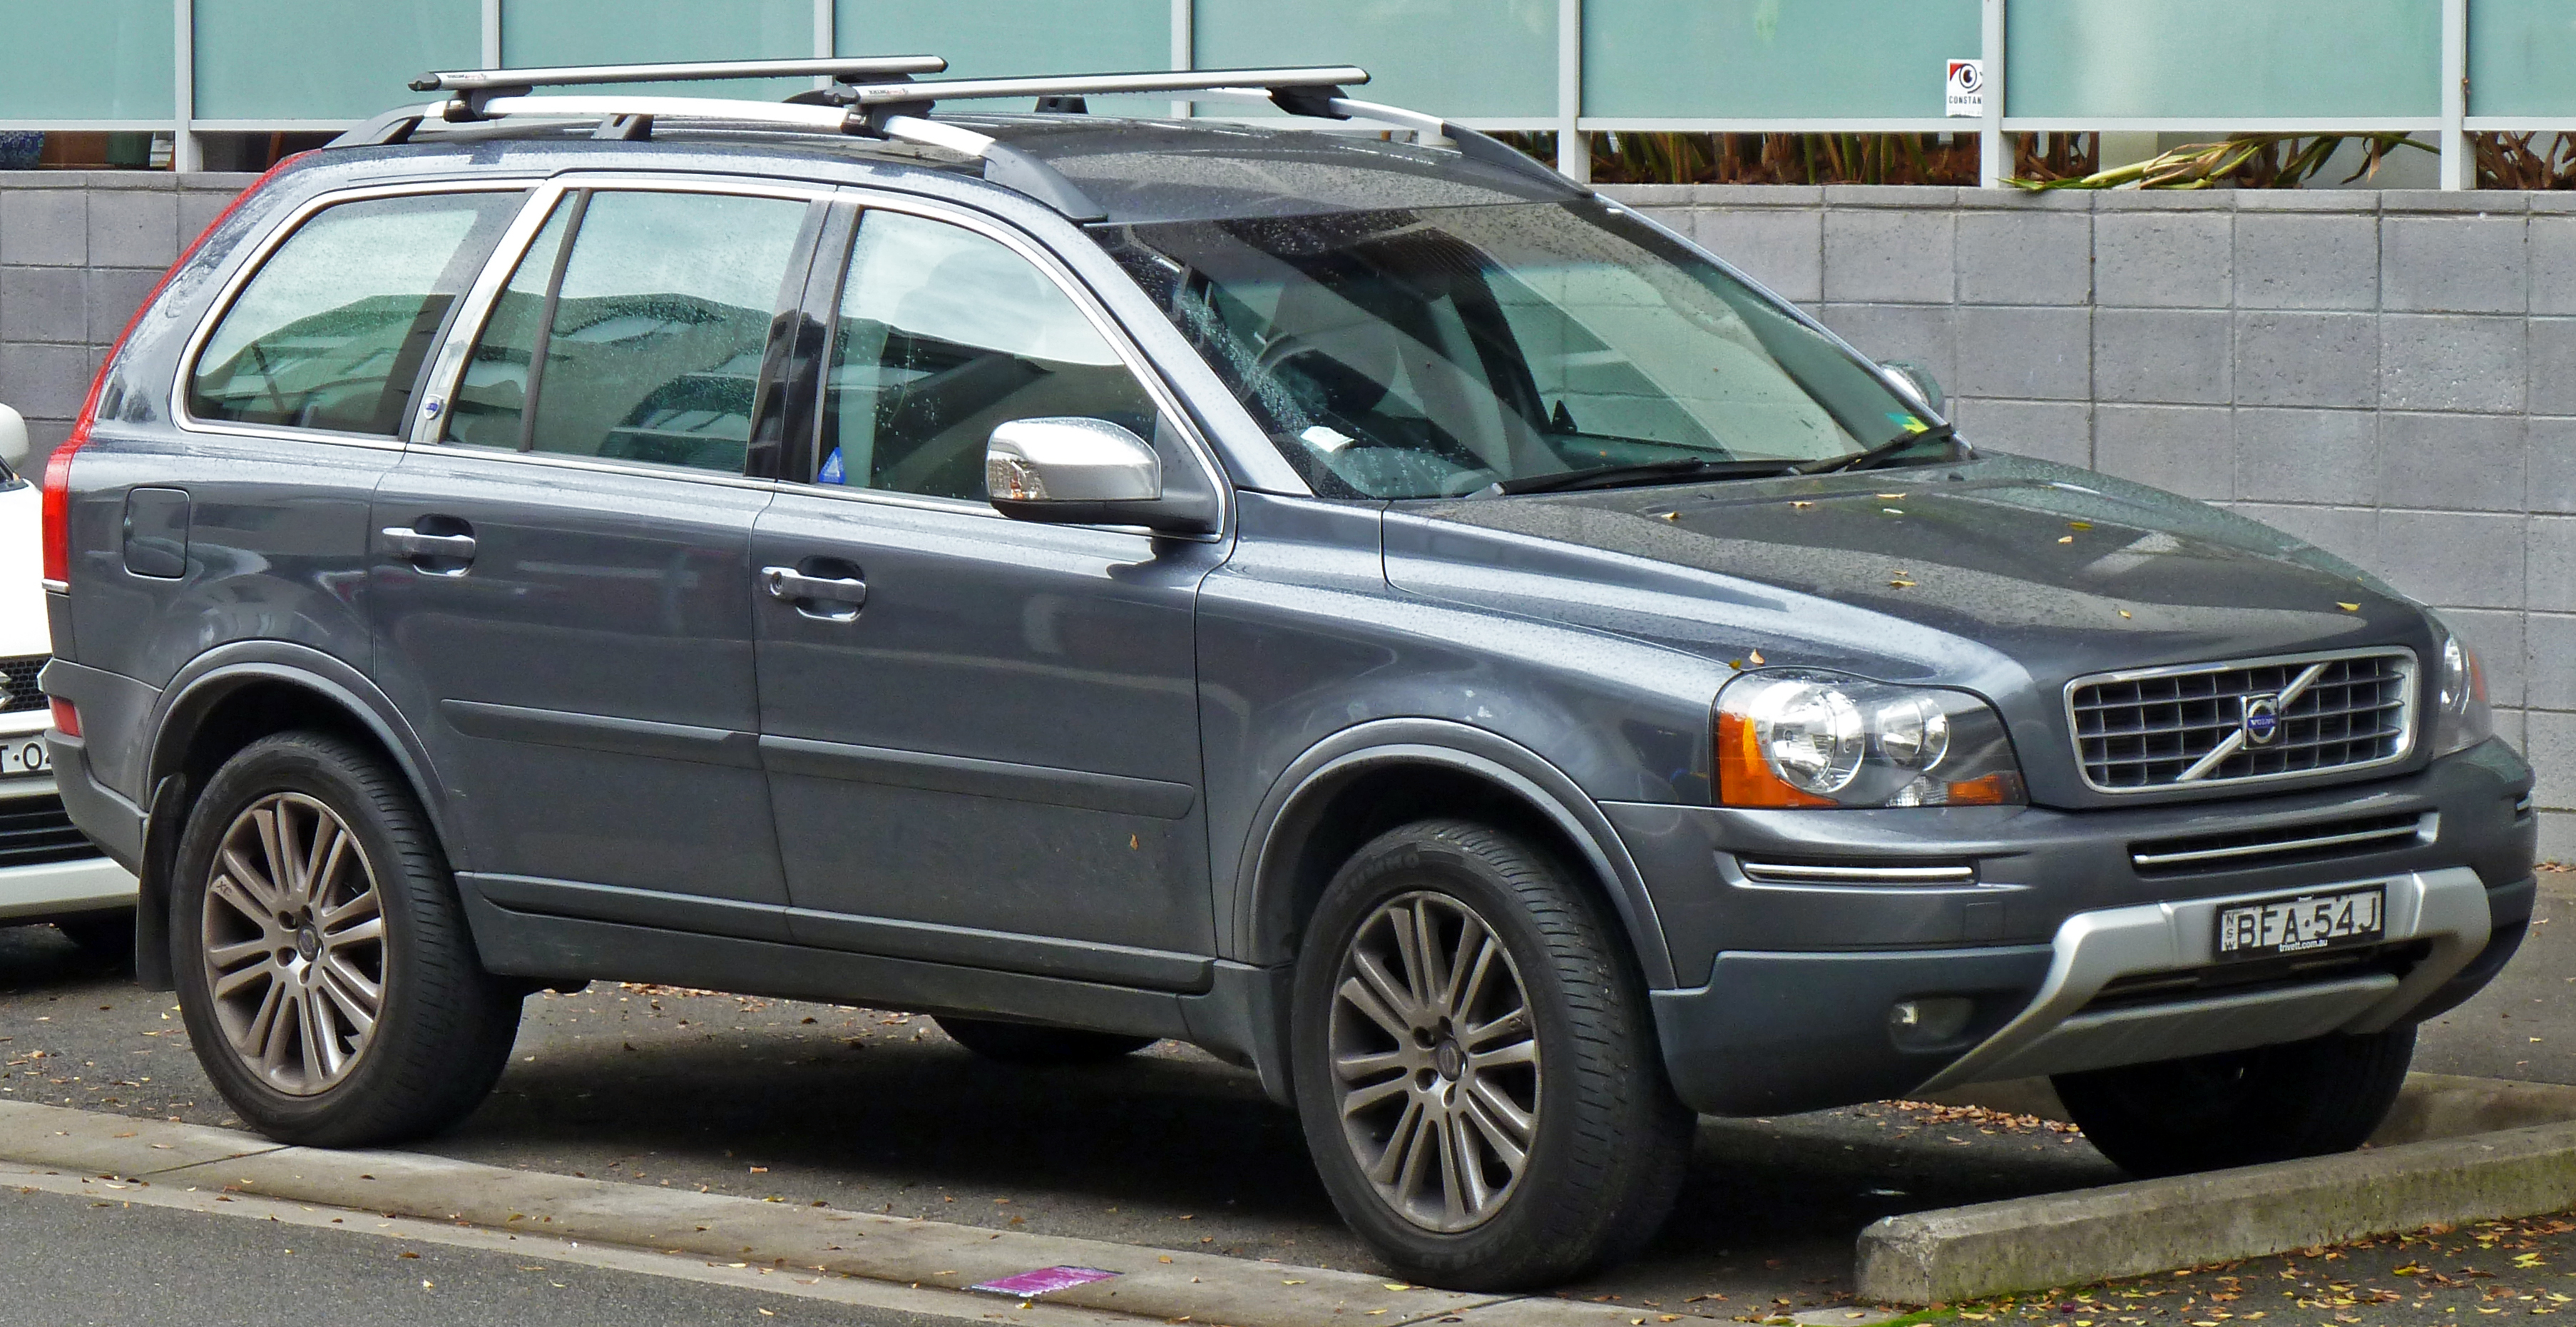 file 2008 volvo xc90 p28 my08 d5 wagon 2010 07 13 wikimedia commons. Black Bedroom Furniture Sets. Home Design Ideas